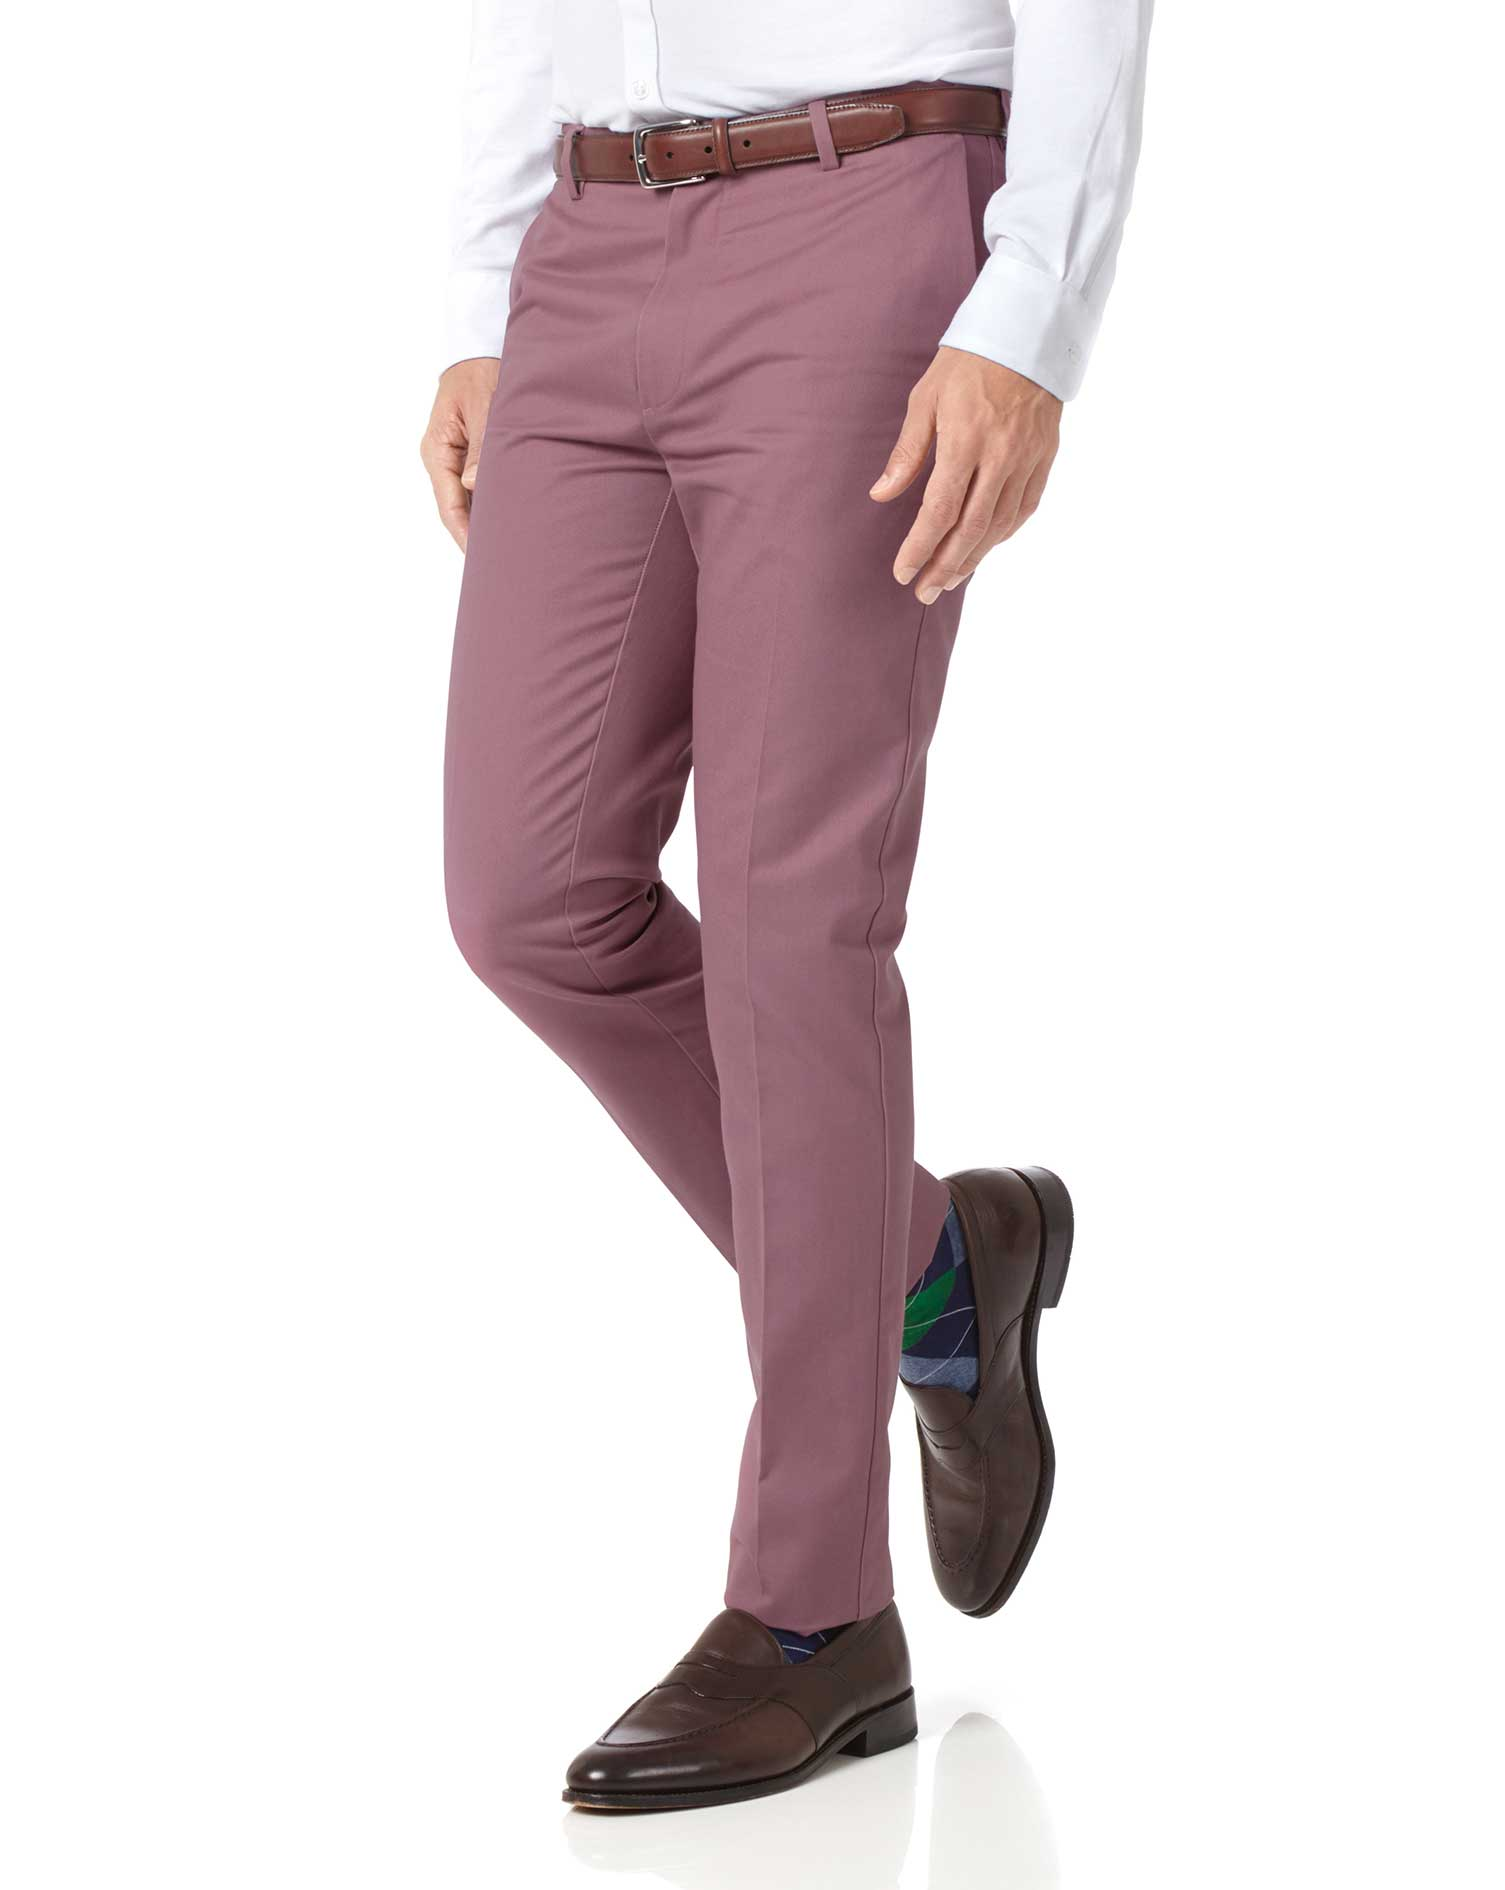 Light Pink Extra Slim Fit Flat Front Non-Iron Cotton Chino Trousers Size W34 L38 by Charles Tyrwhitt